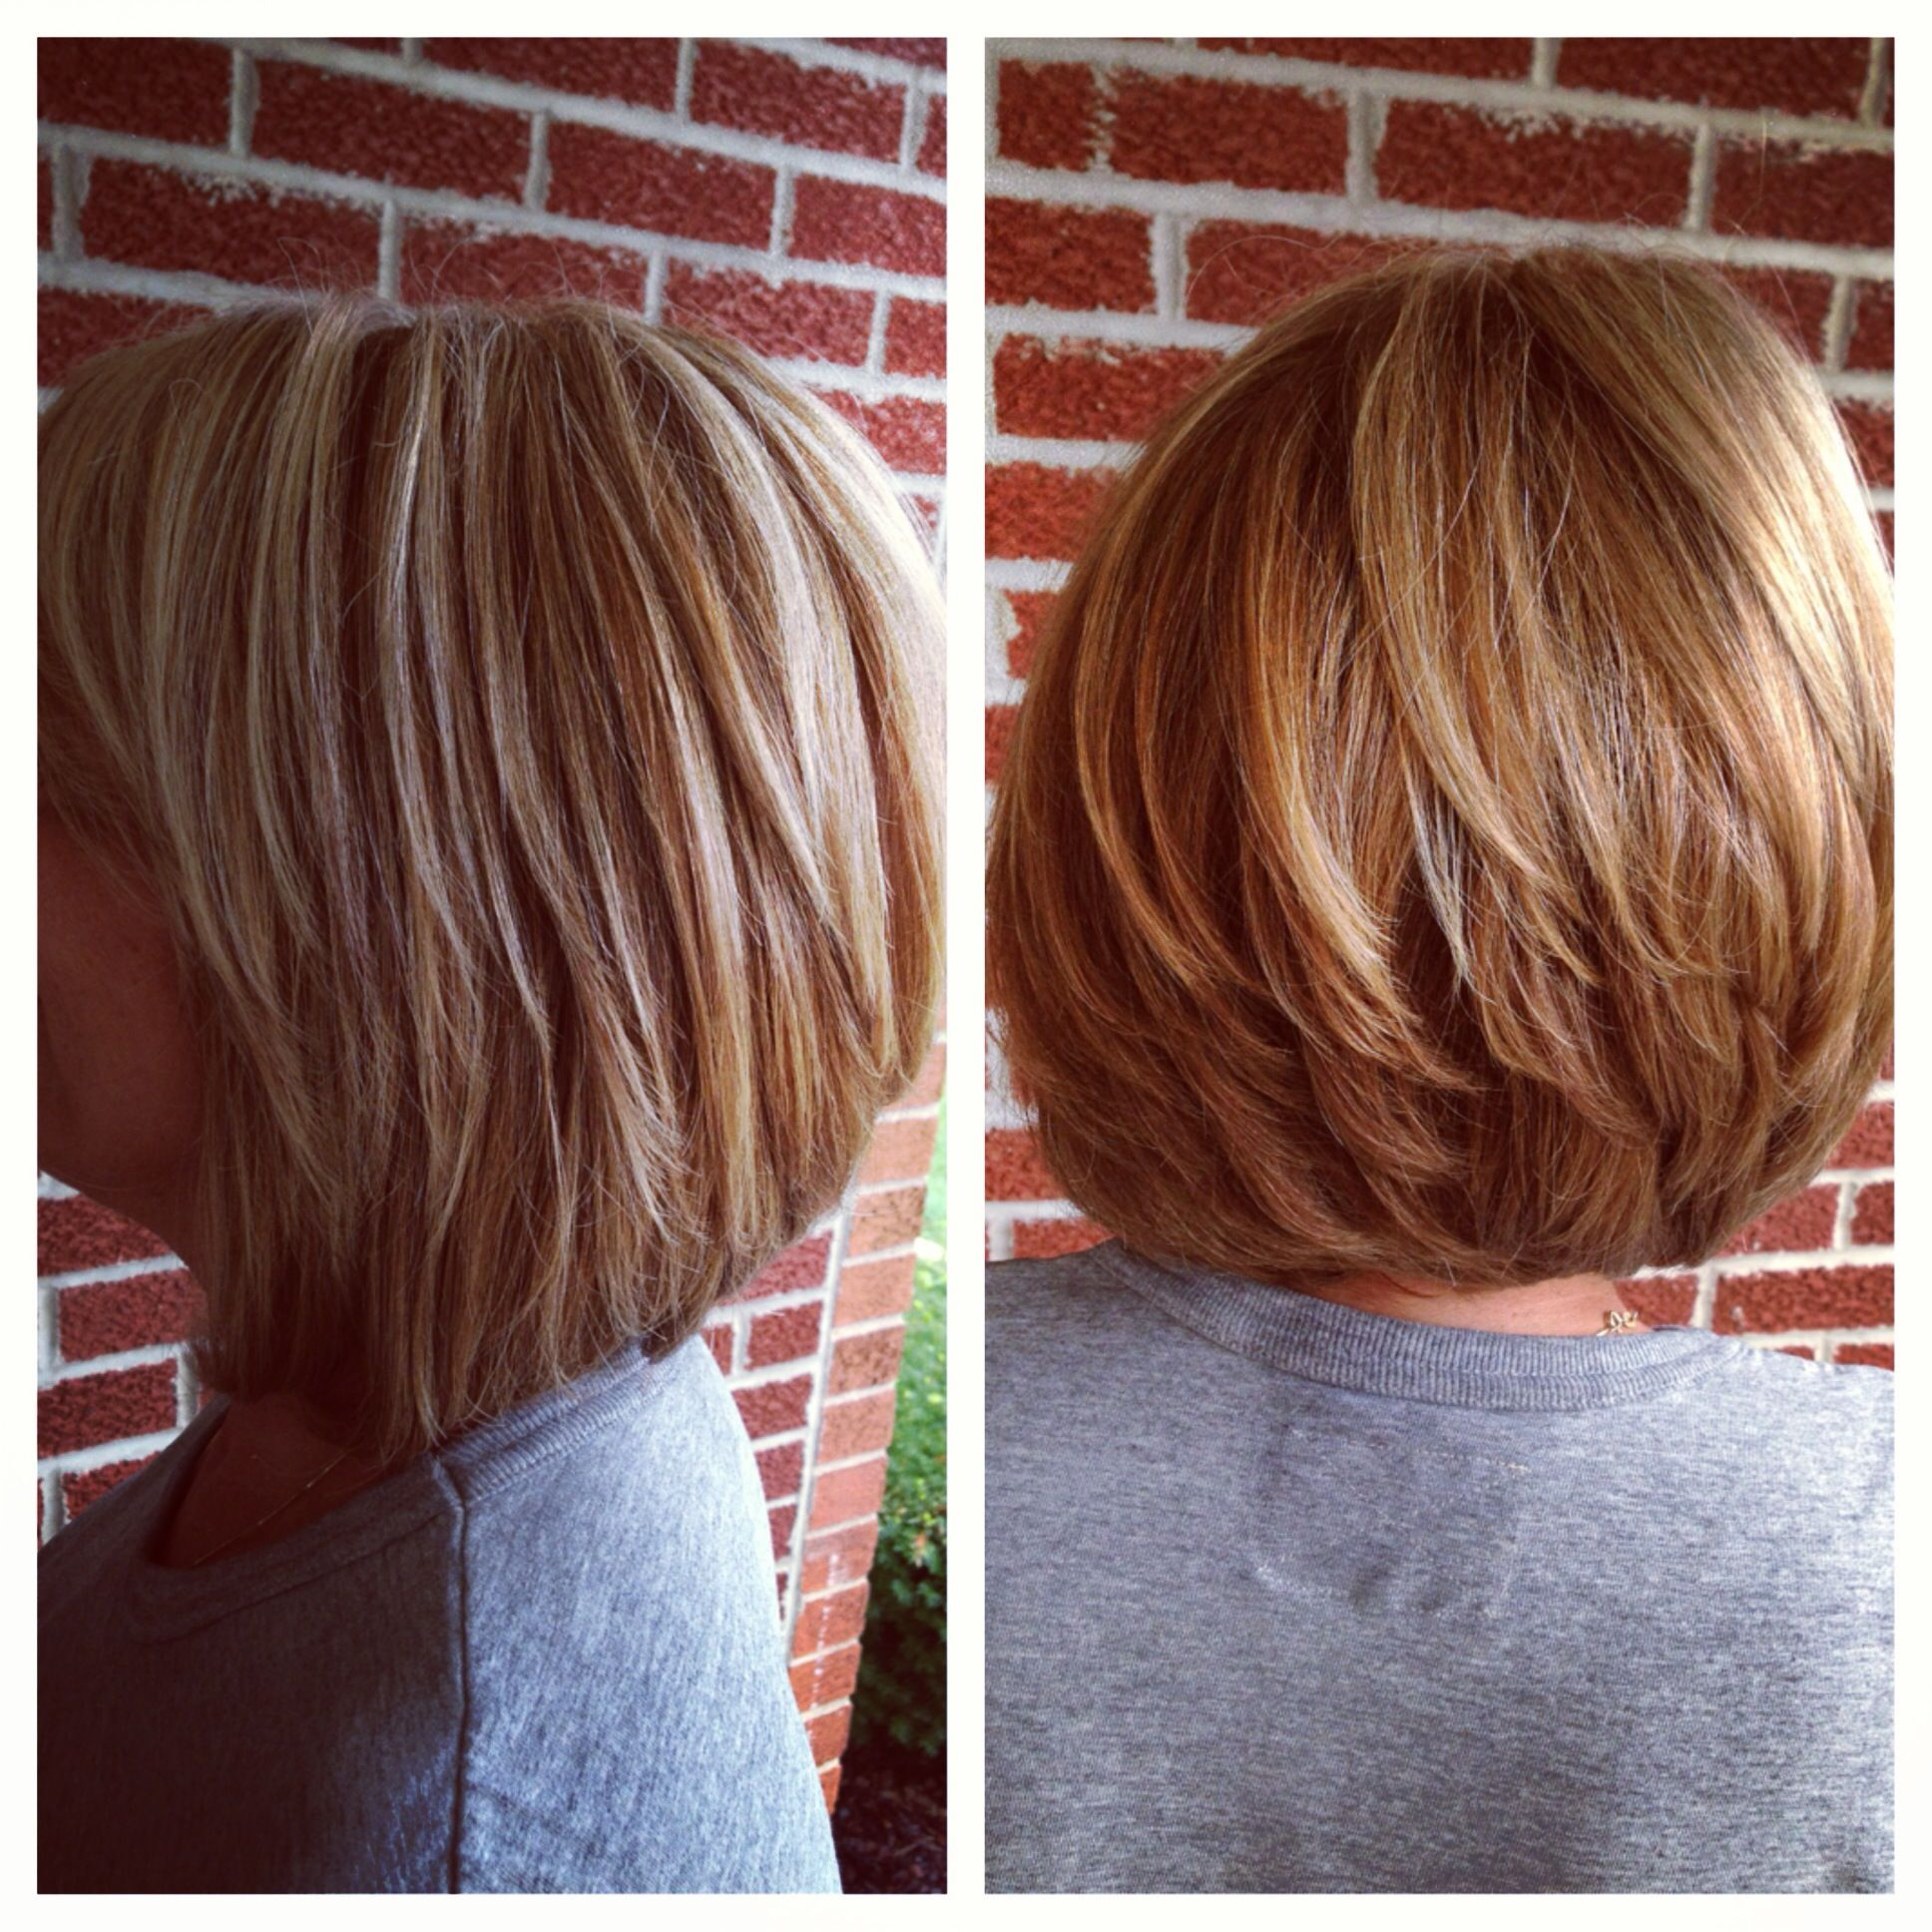 Short Cut With Hi And Low Lights Hairbyjulia In 2018 Pinterest